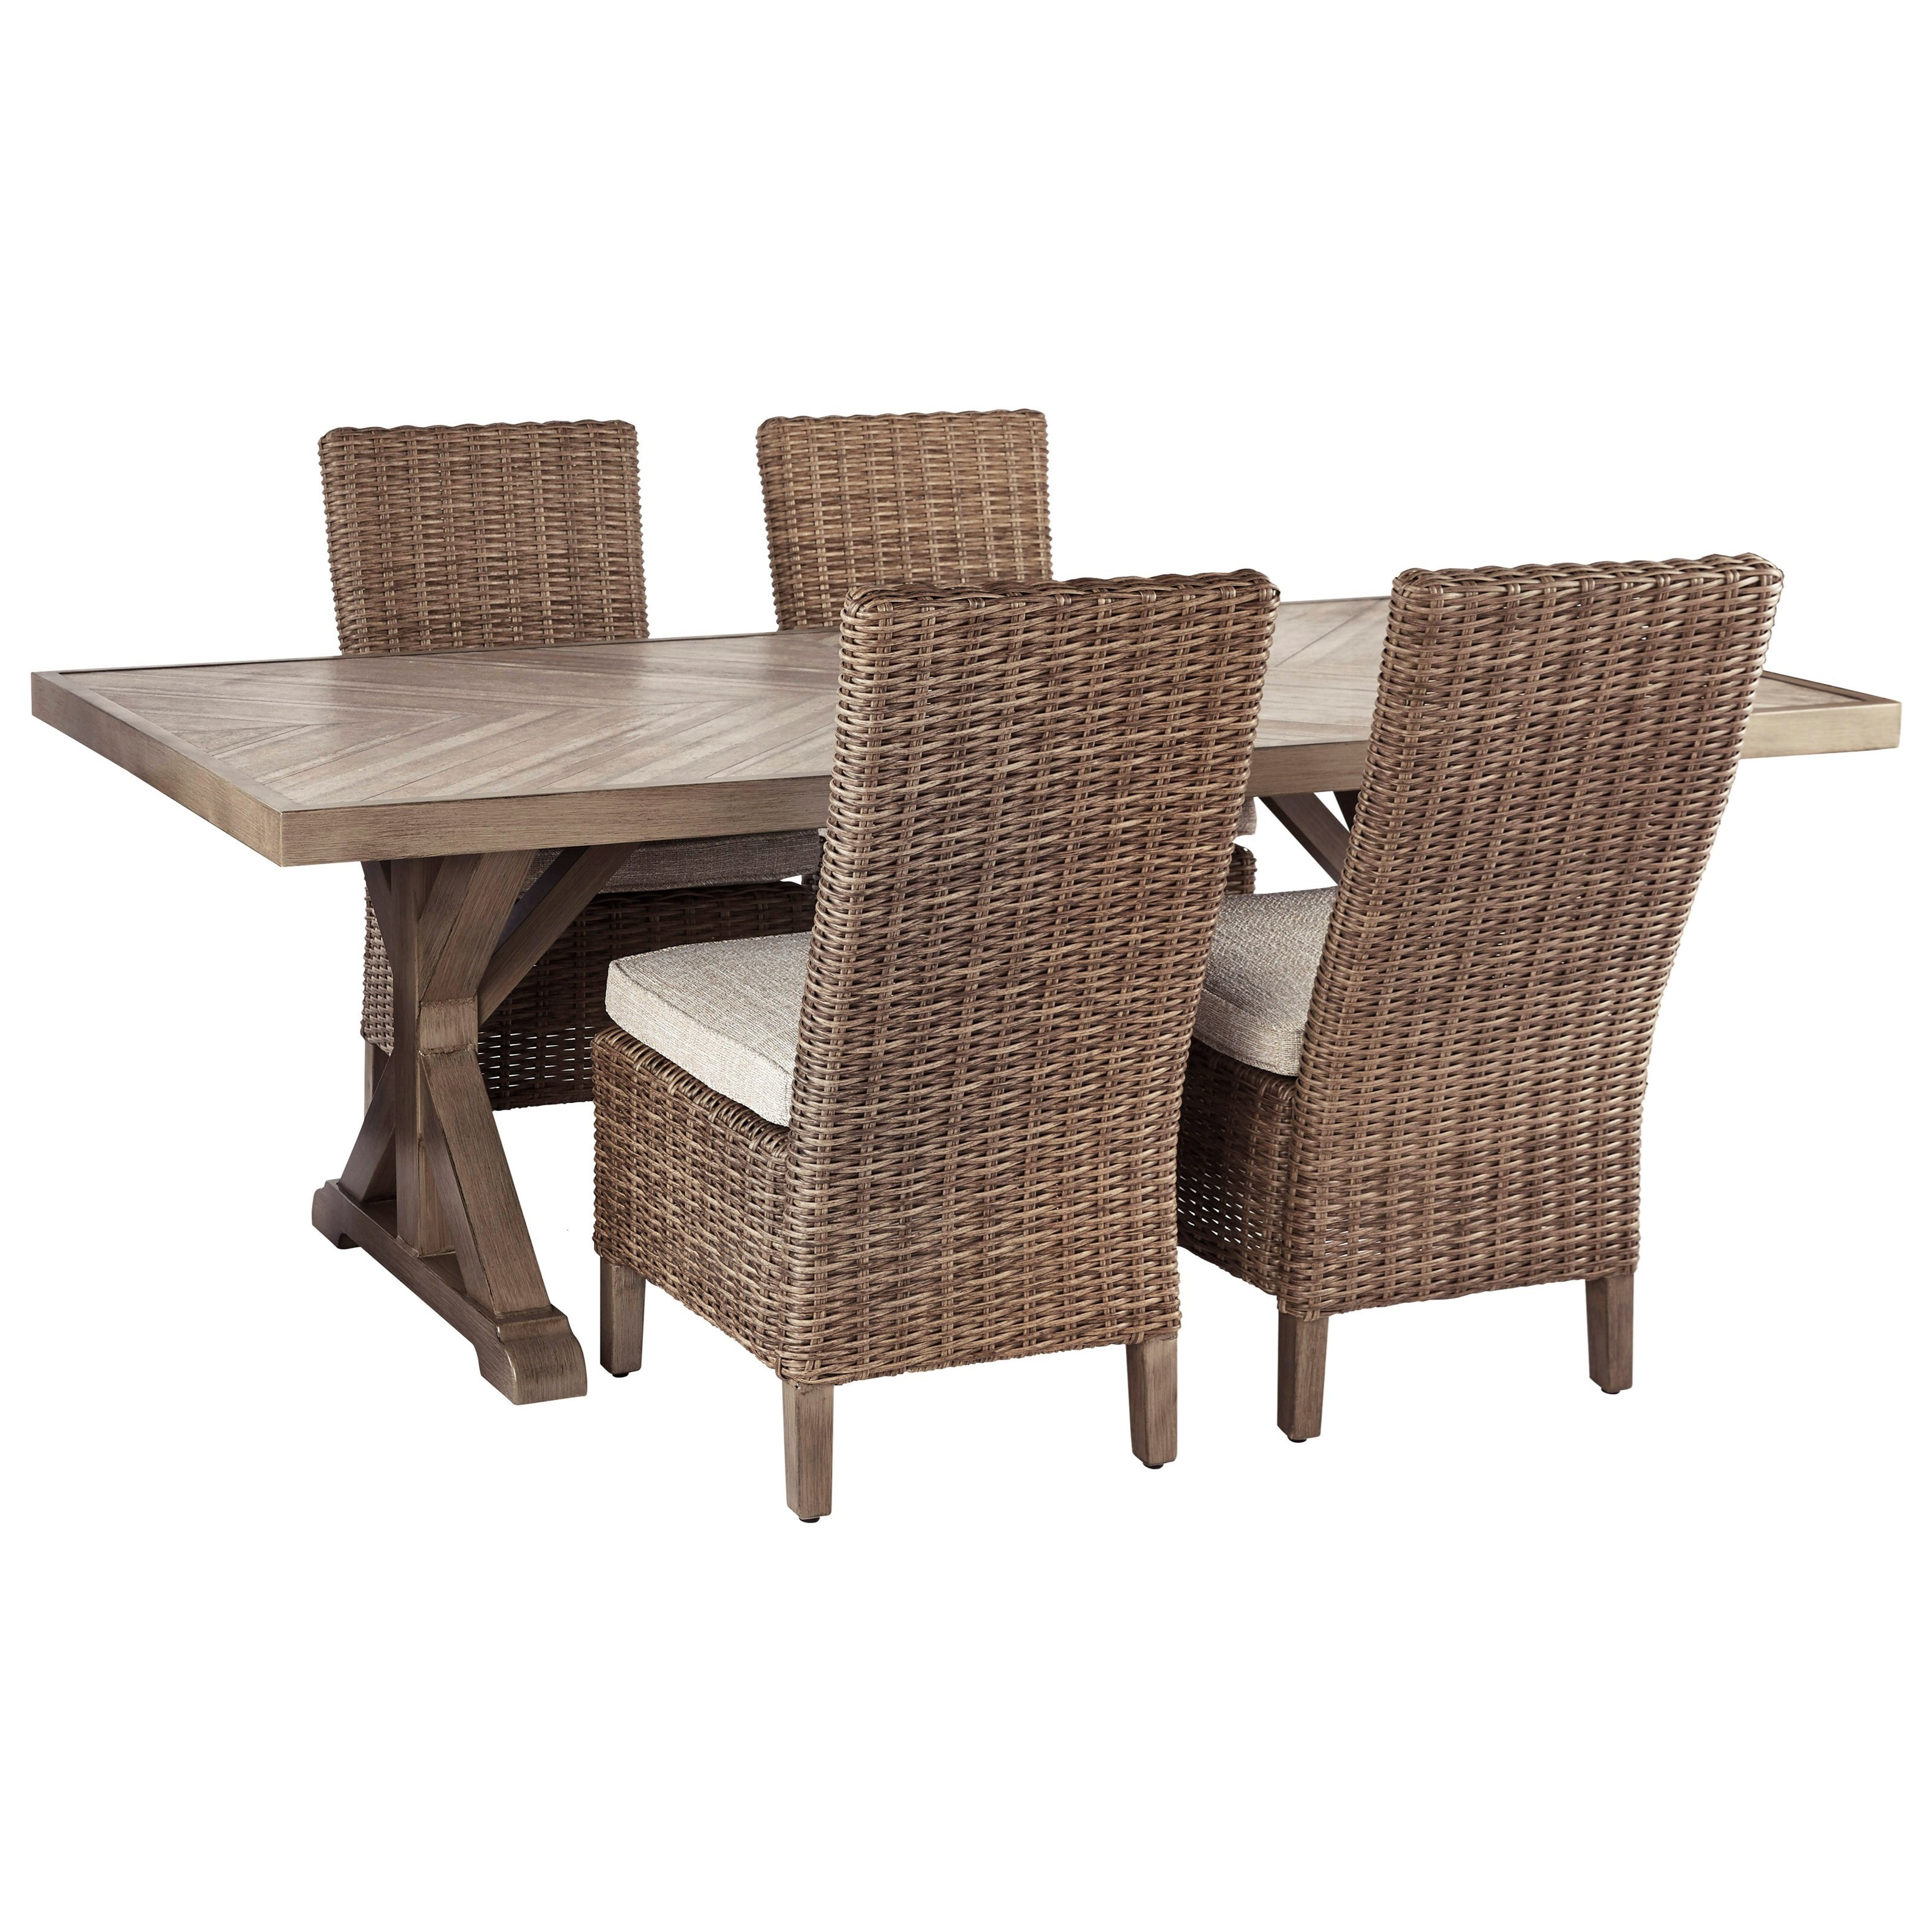 Beachcroft 5 Piece Outdoor Dining Set by Signature Design by Ashley at Rife's Home Furniture